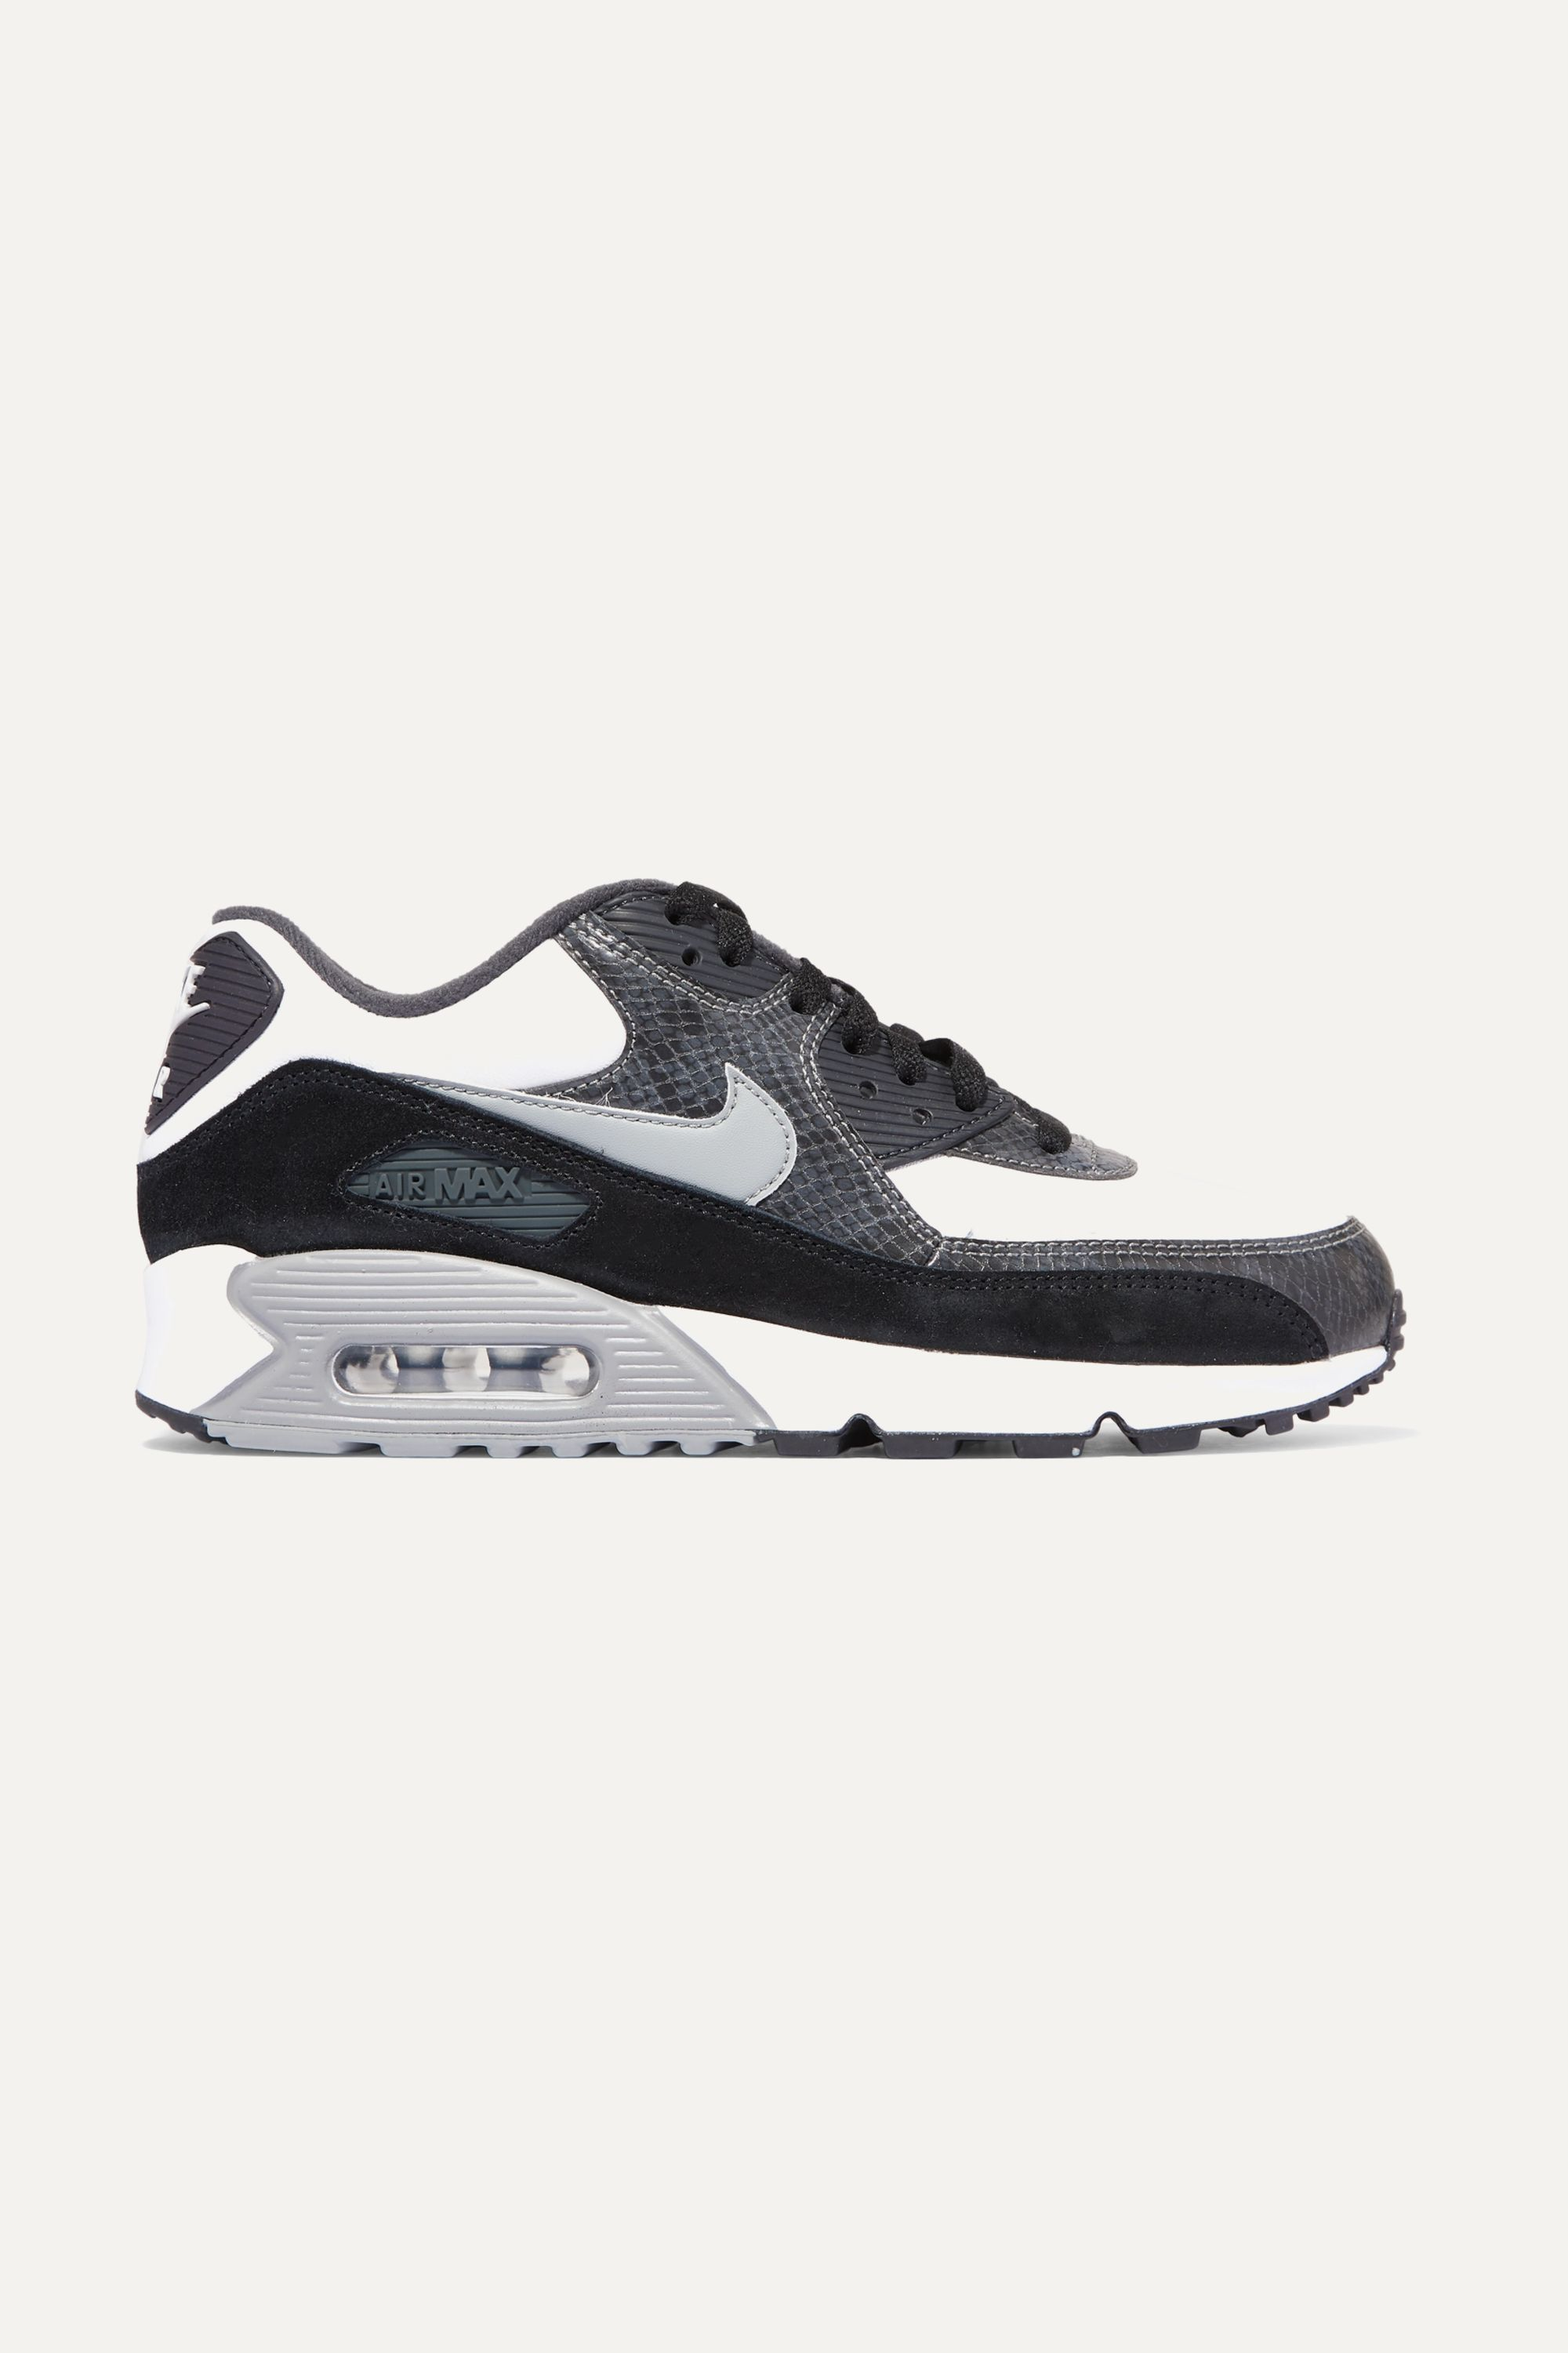 Nike Air Max 90 QS snake-effect leather and suede sneakers